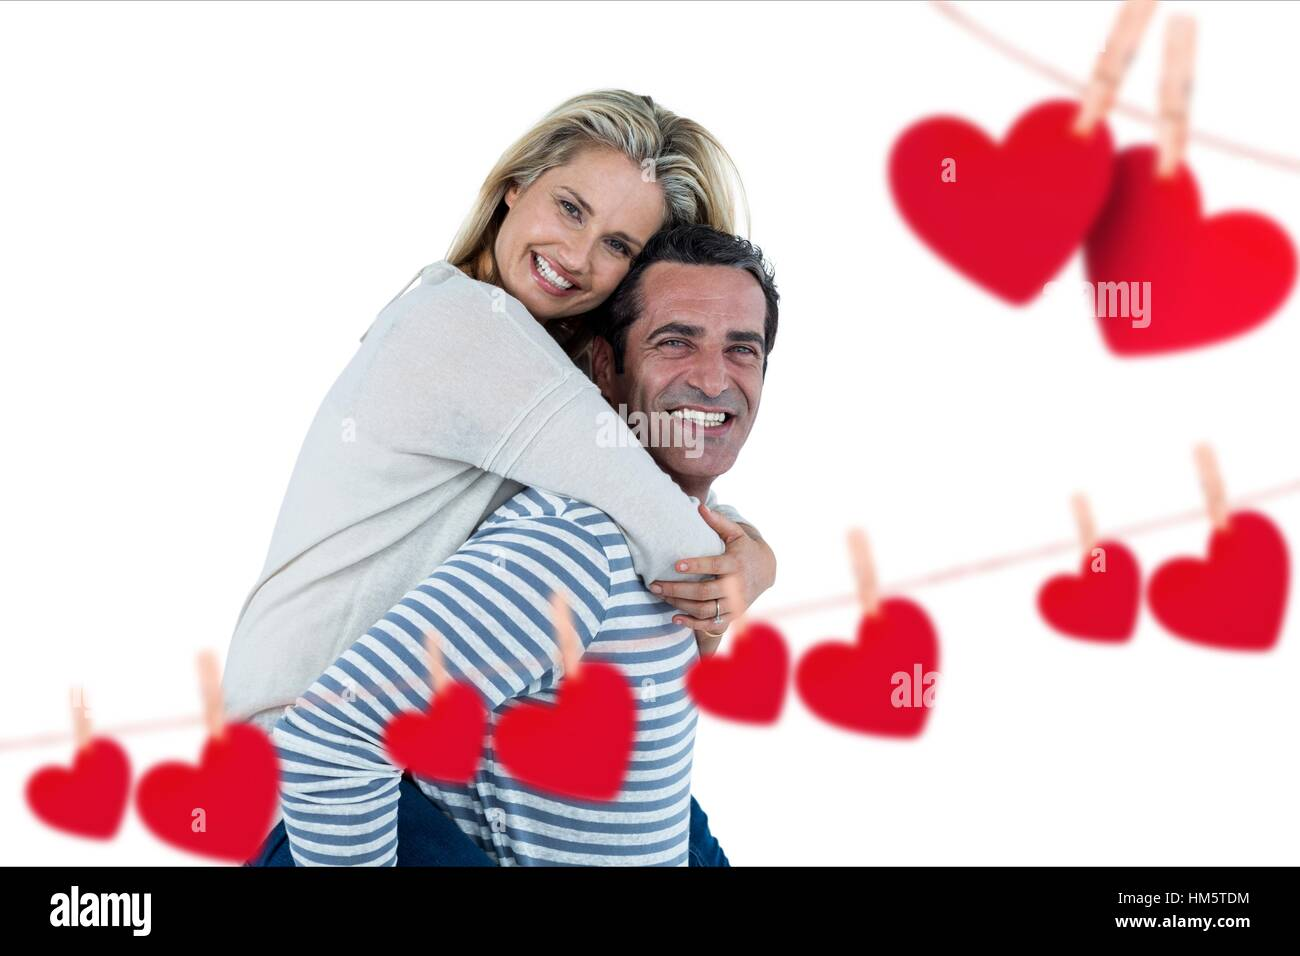 Happy man giving piggyback to woman - Stock Image